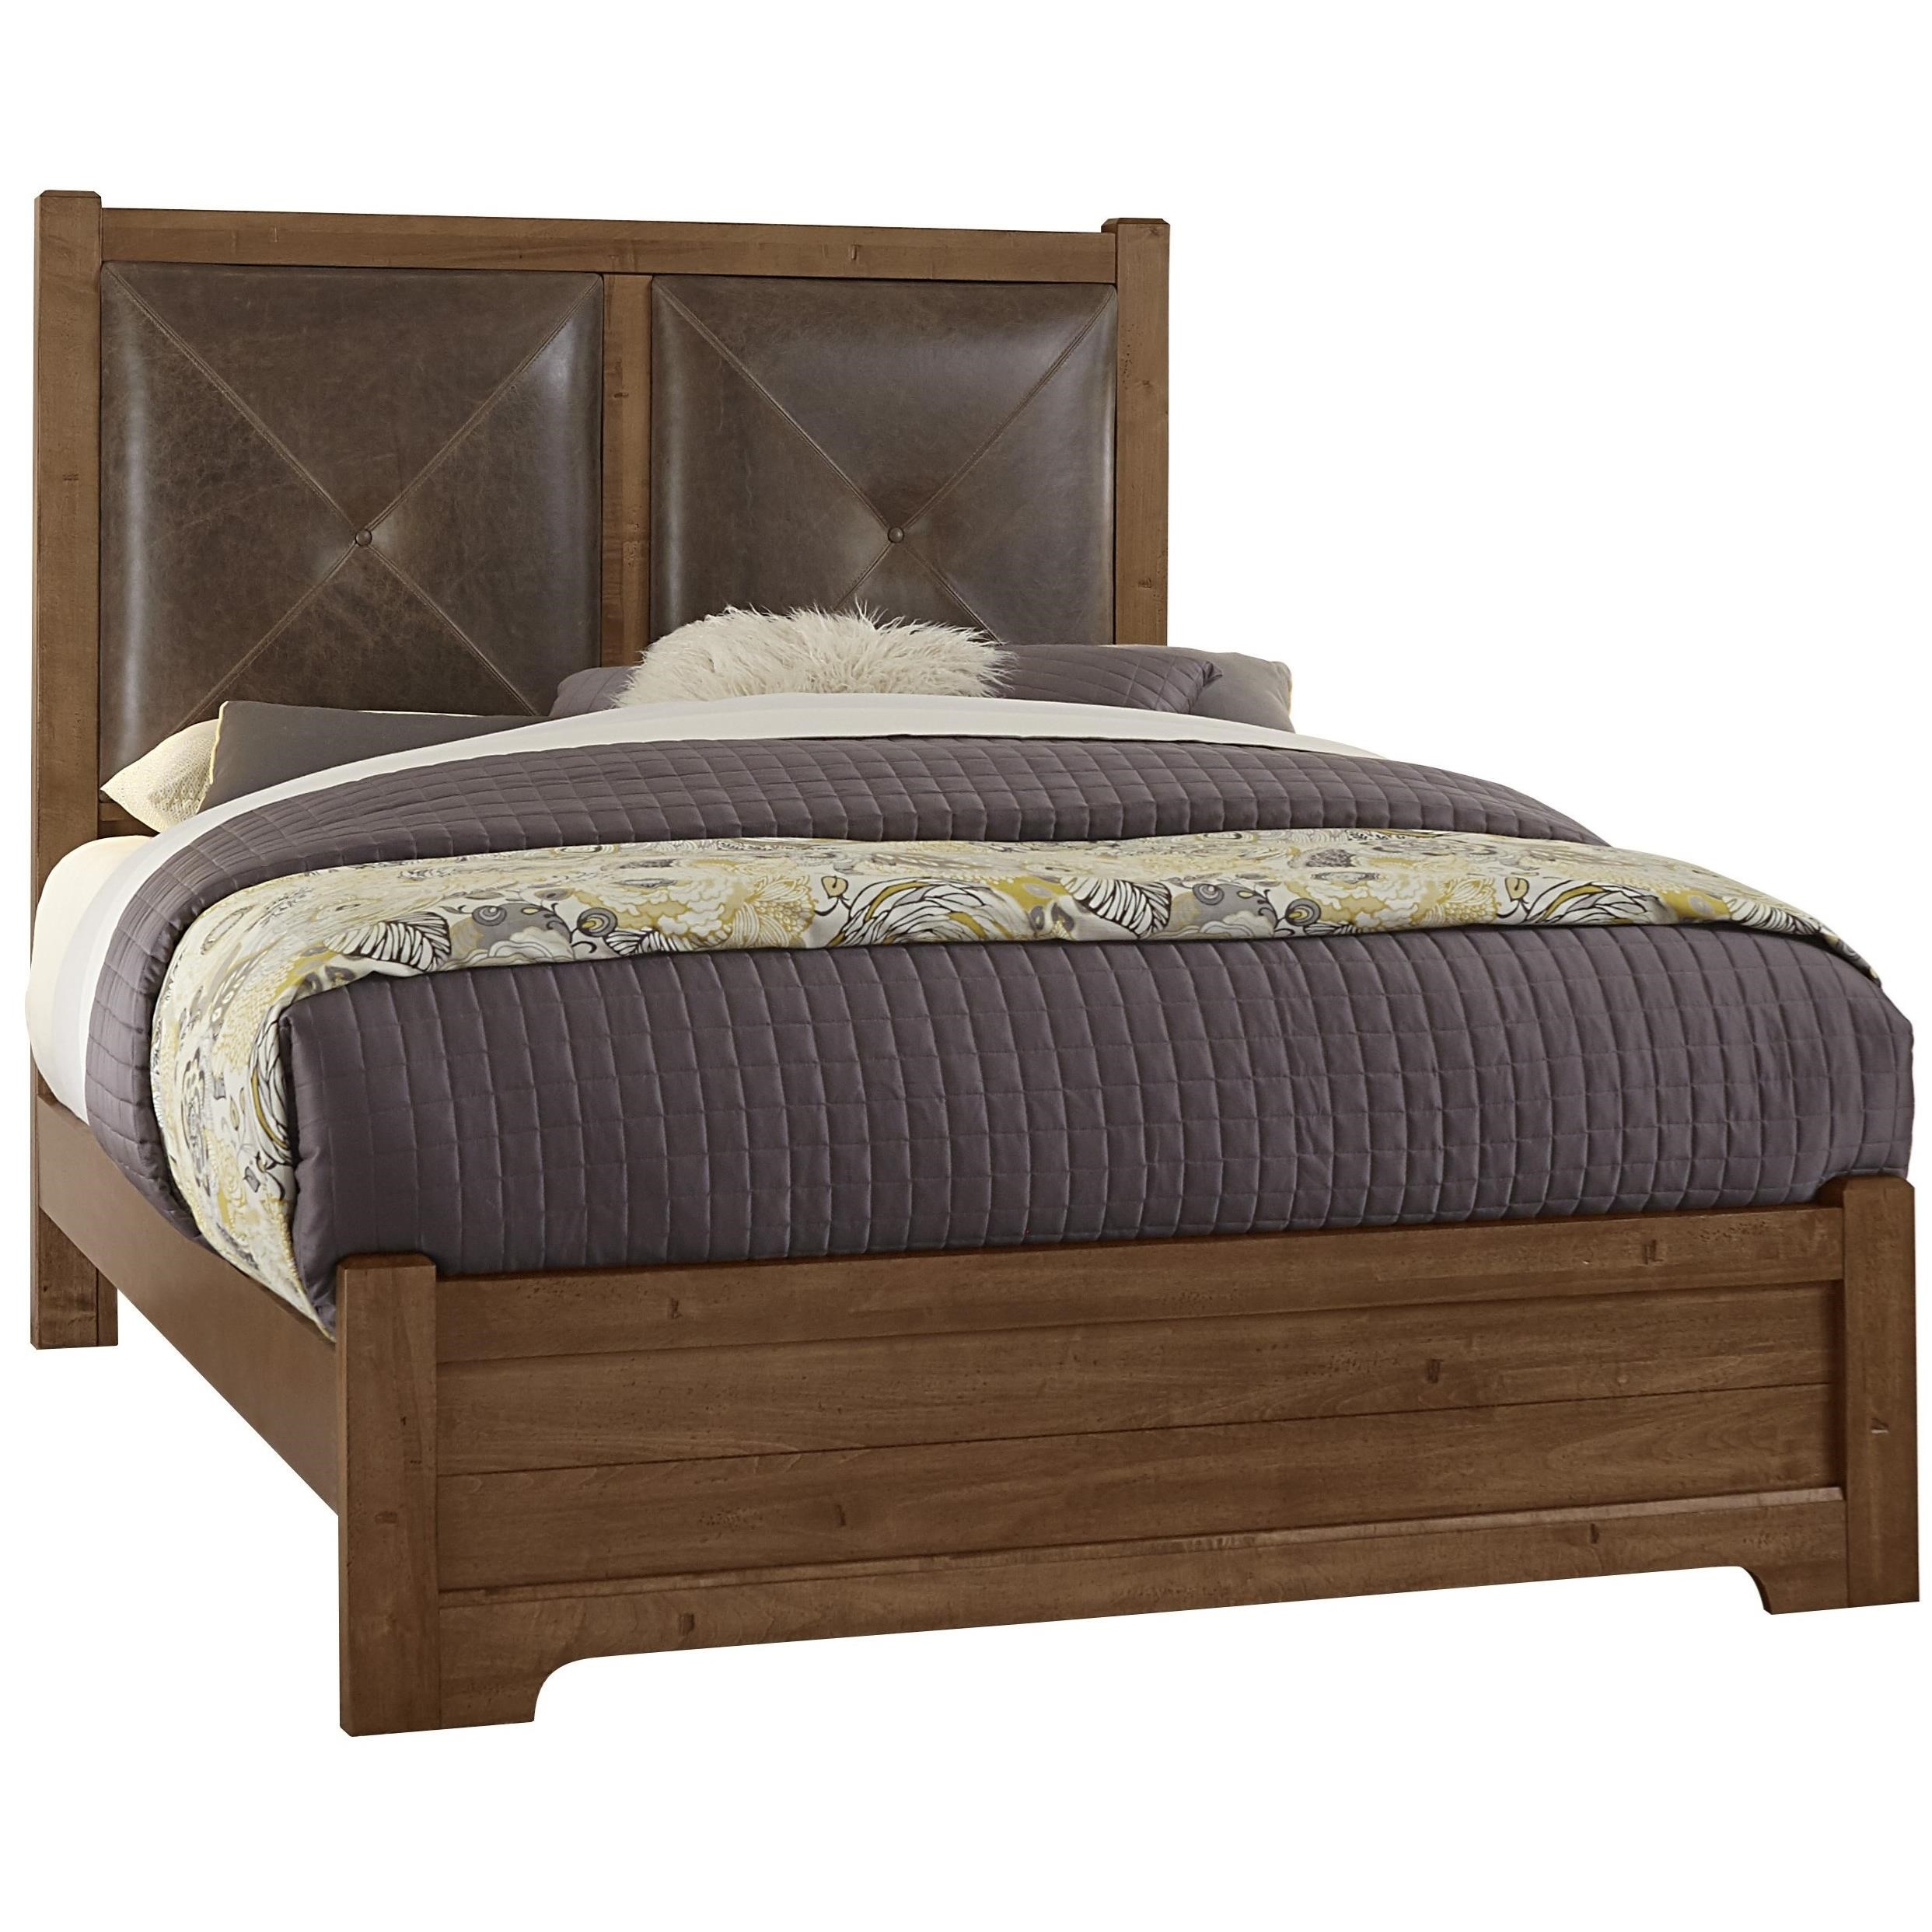 Wood And Leather Headboard: Artisan & Post Cool Rustic Solid Wood Queen Leather